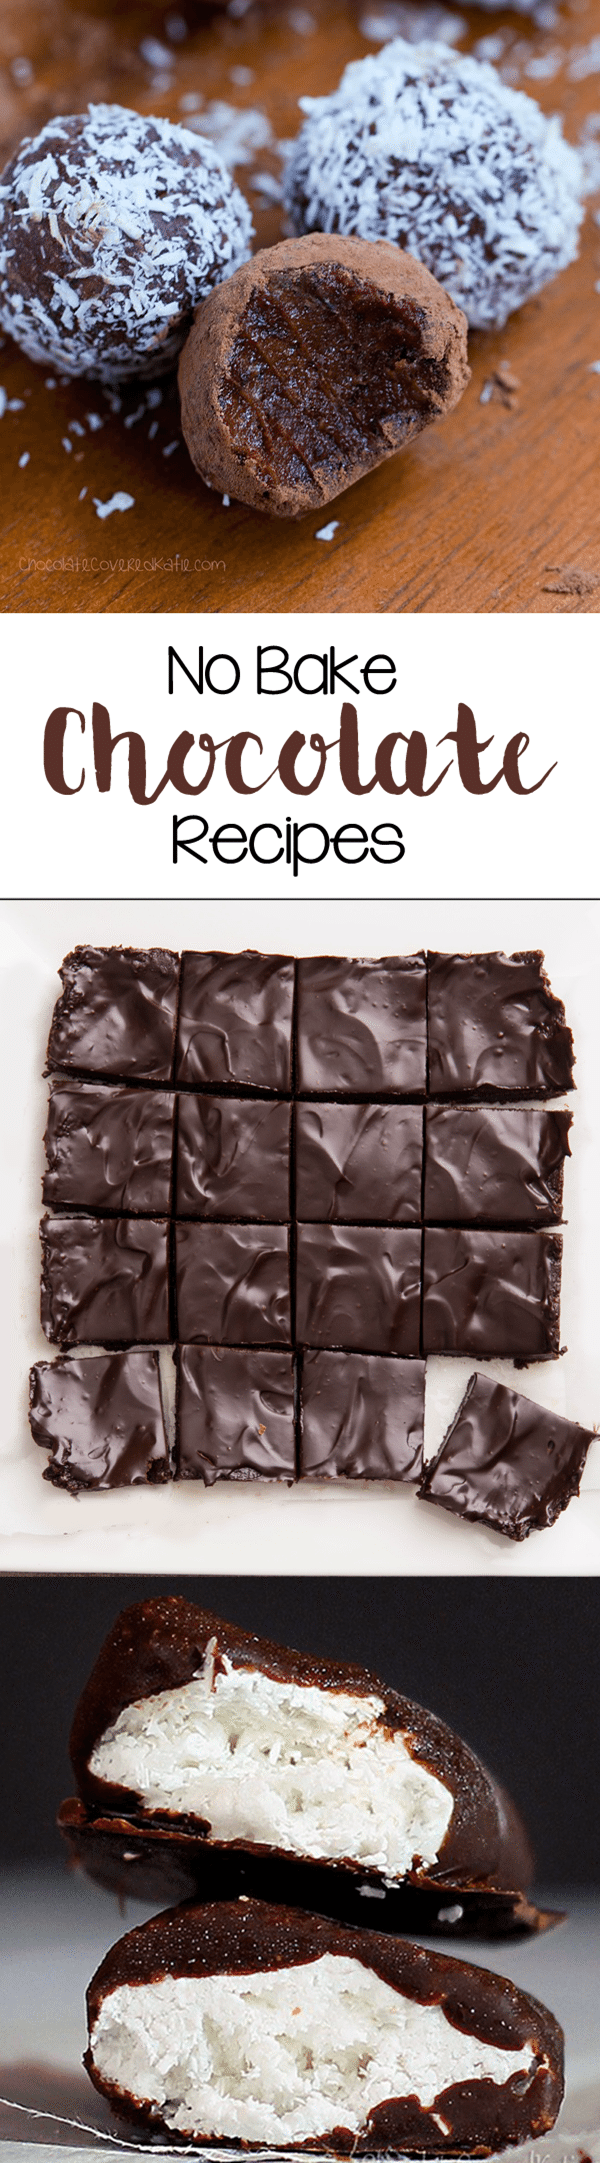 no-bake-chocolate-recipes_thumb.png